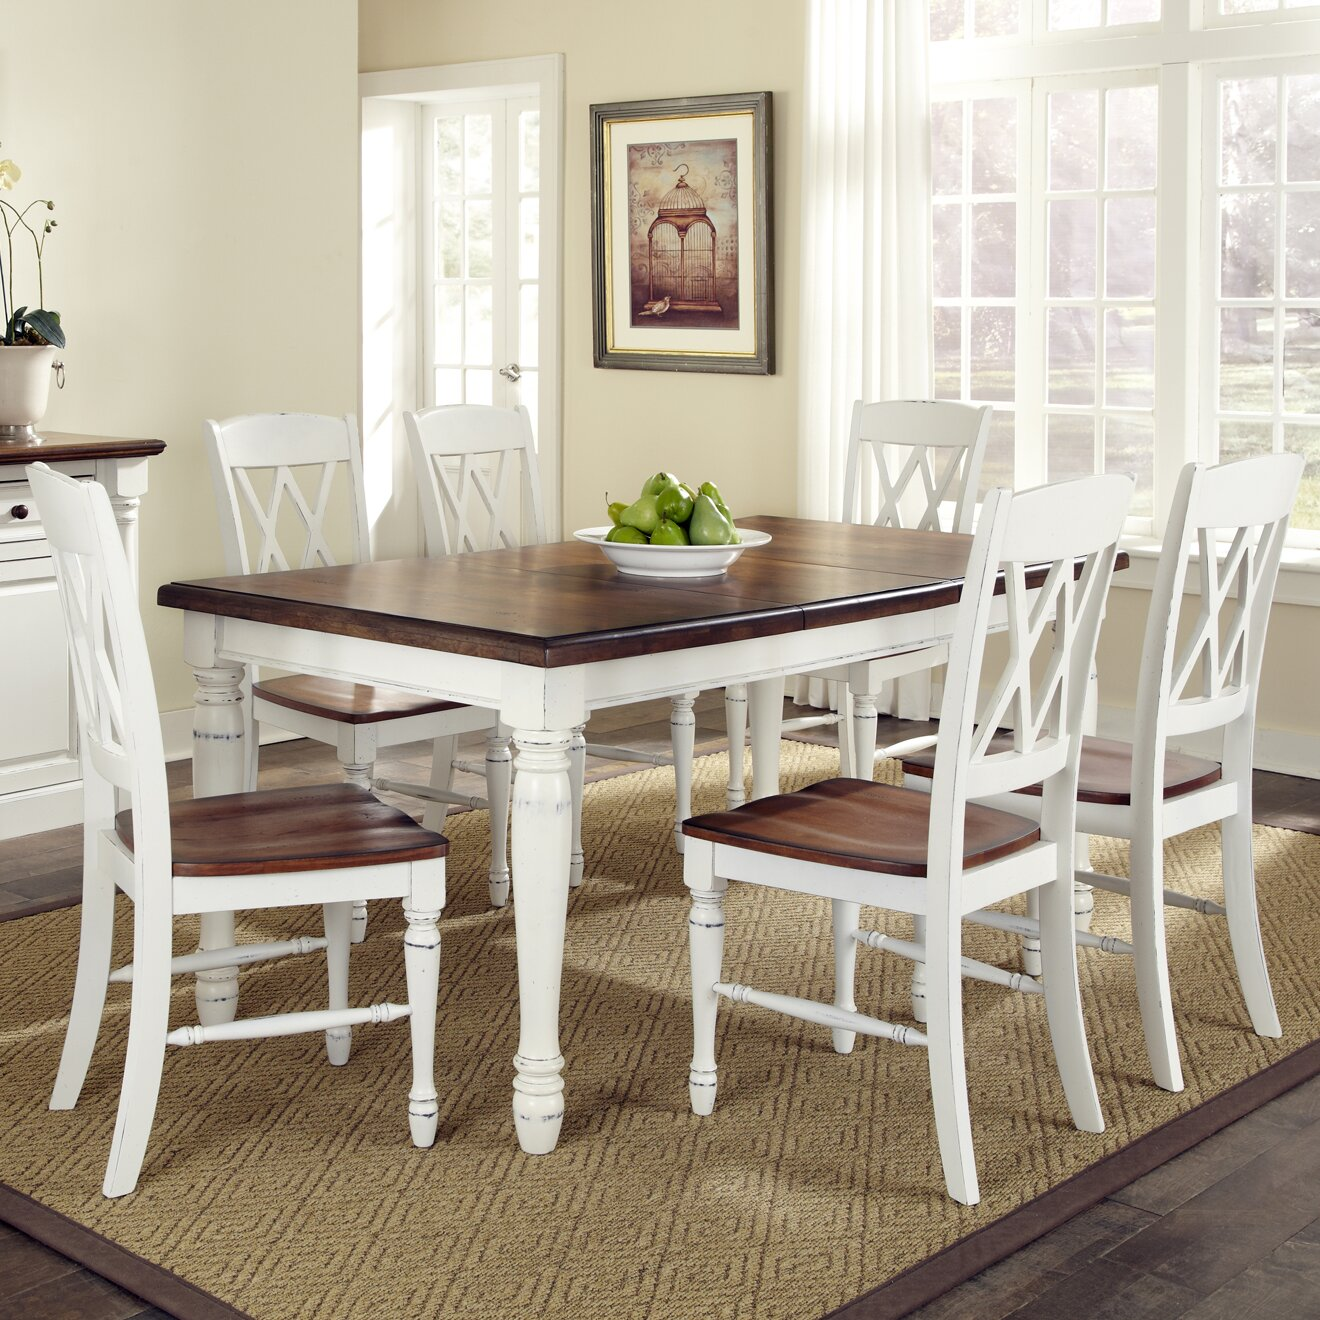 ^ 7 Piece Kitchen & Dining oom Sets You'll Love Wayfair